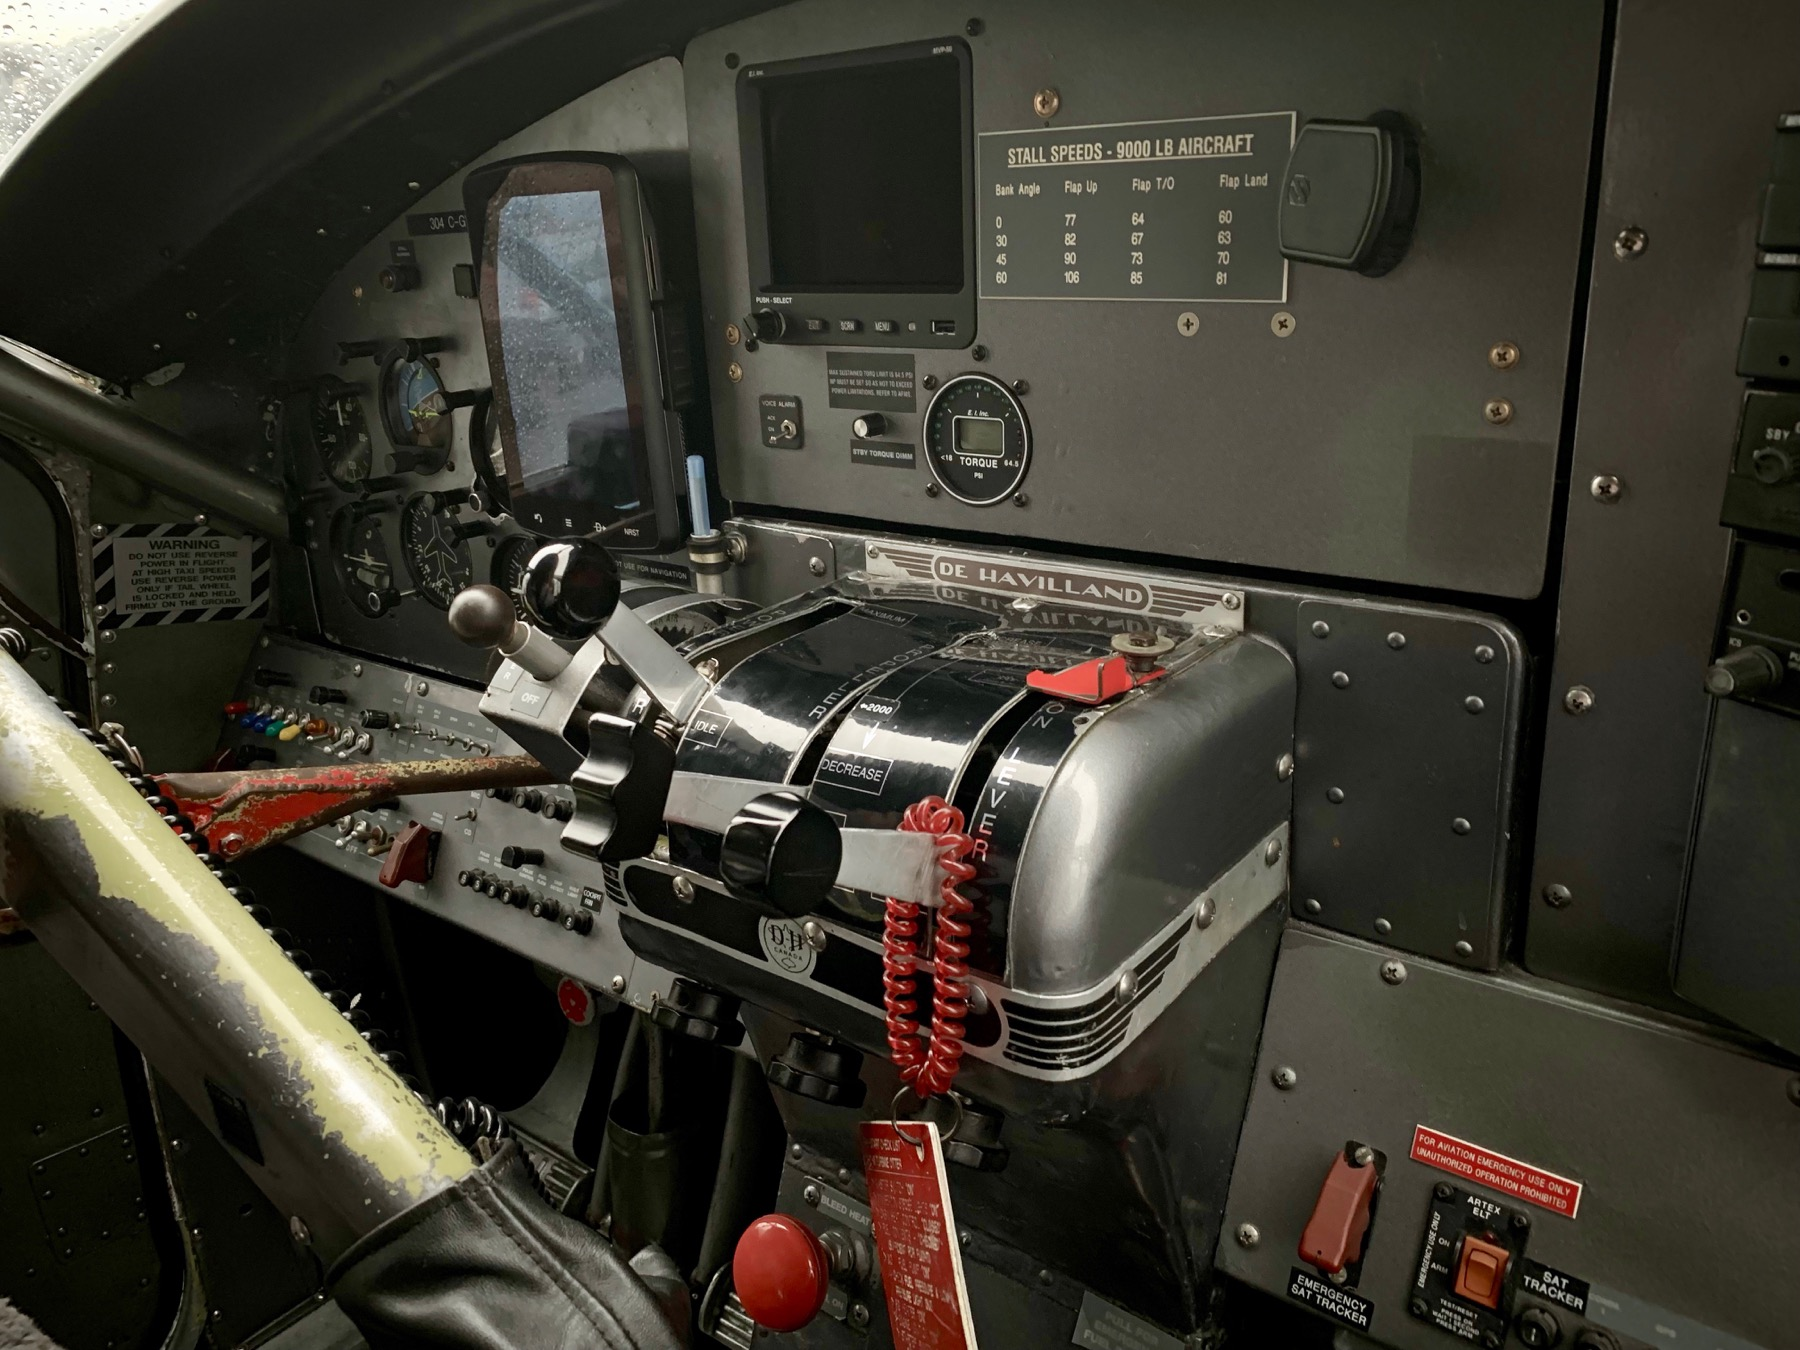 The controls for the float plane